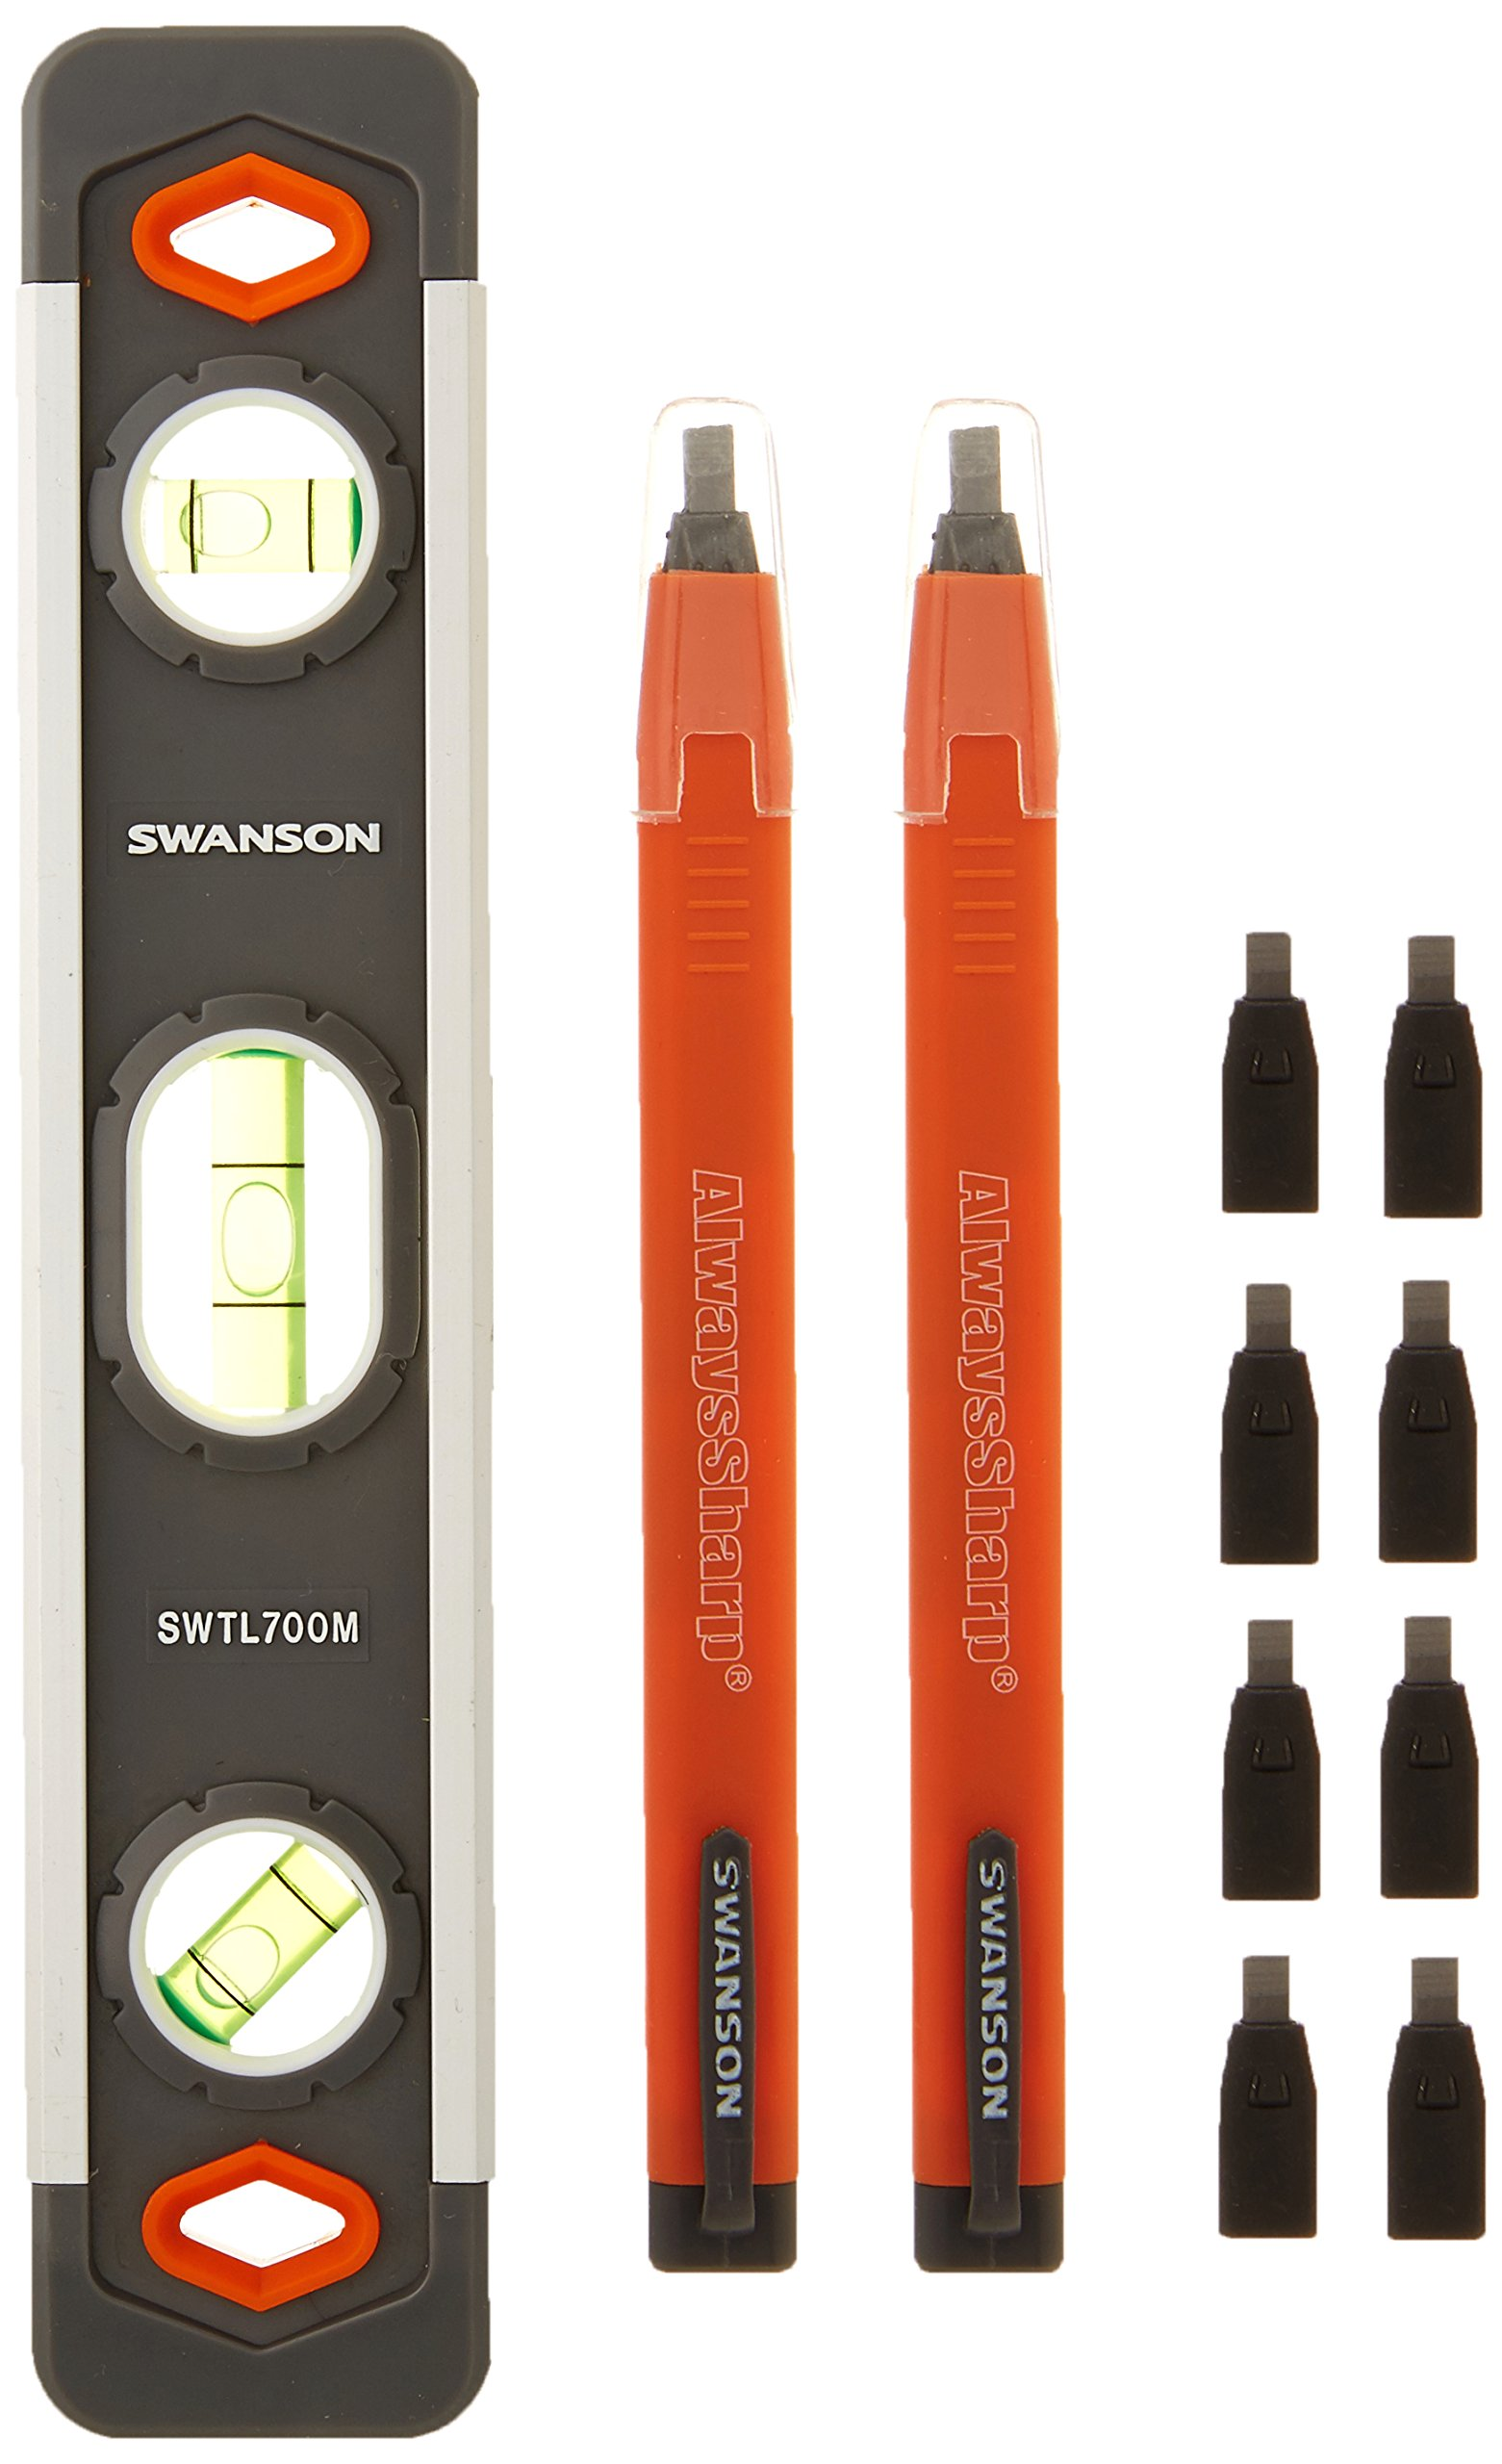 Swanson pack of 2 Mechanical Carpenter Pencils with 24 Graphite Cartridges and a Magnetic Torpedo Level by Swanson Tool (Image #1)